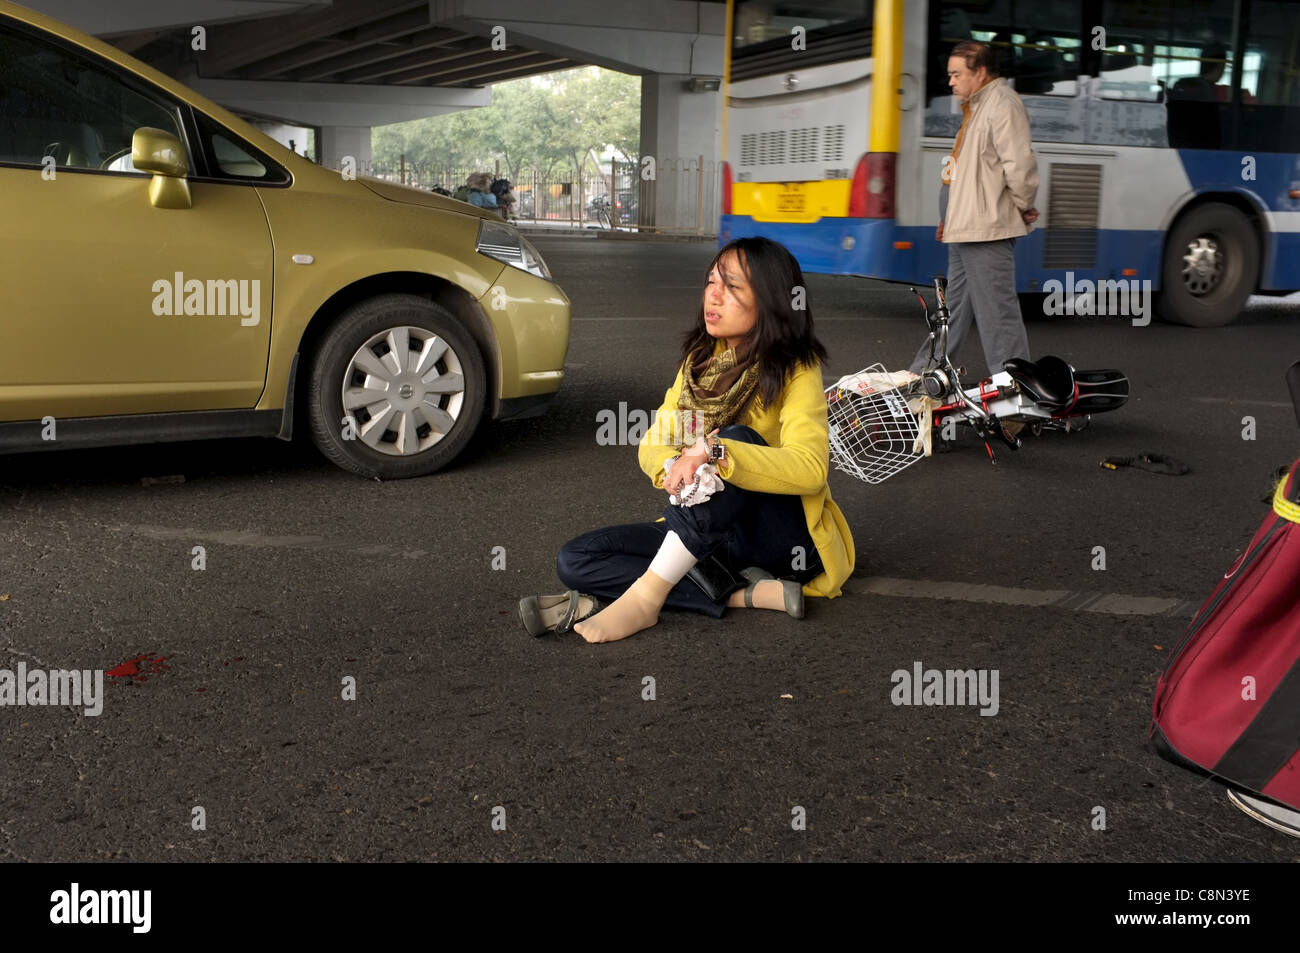 A woman sits on the ground after her bicycle was hit by a car during a traffic accident in Beijing, China. 20-Oct - Stock Image